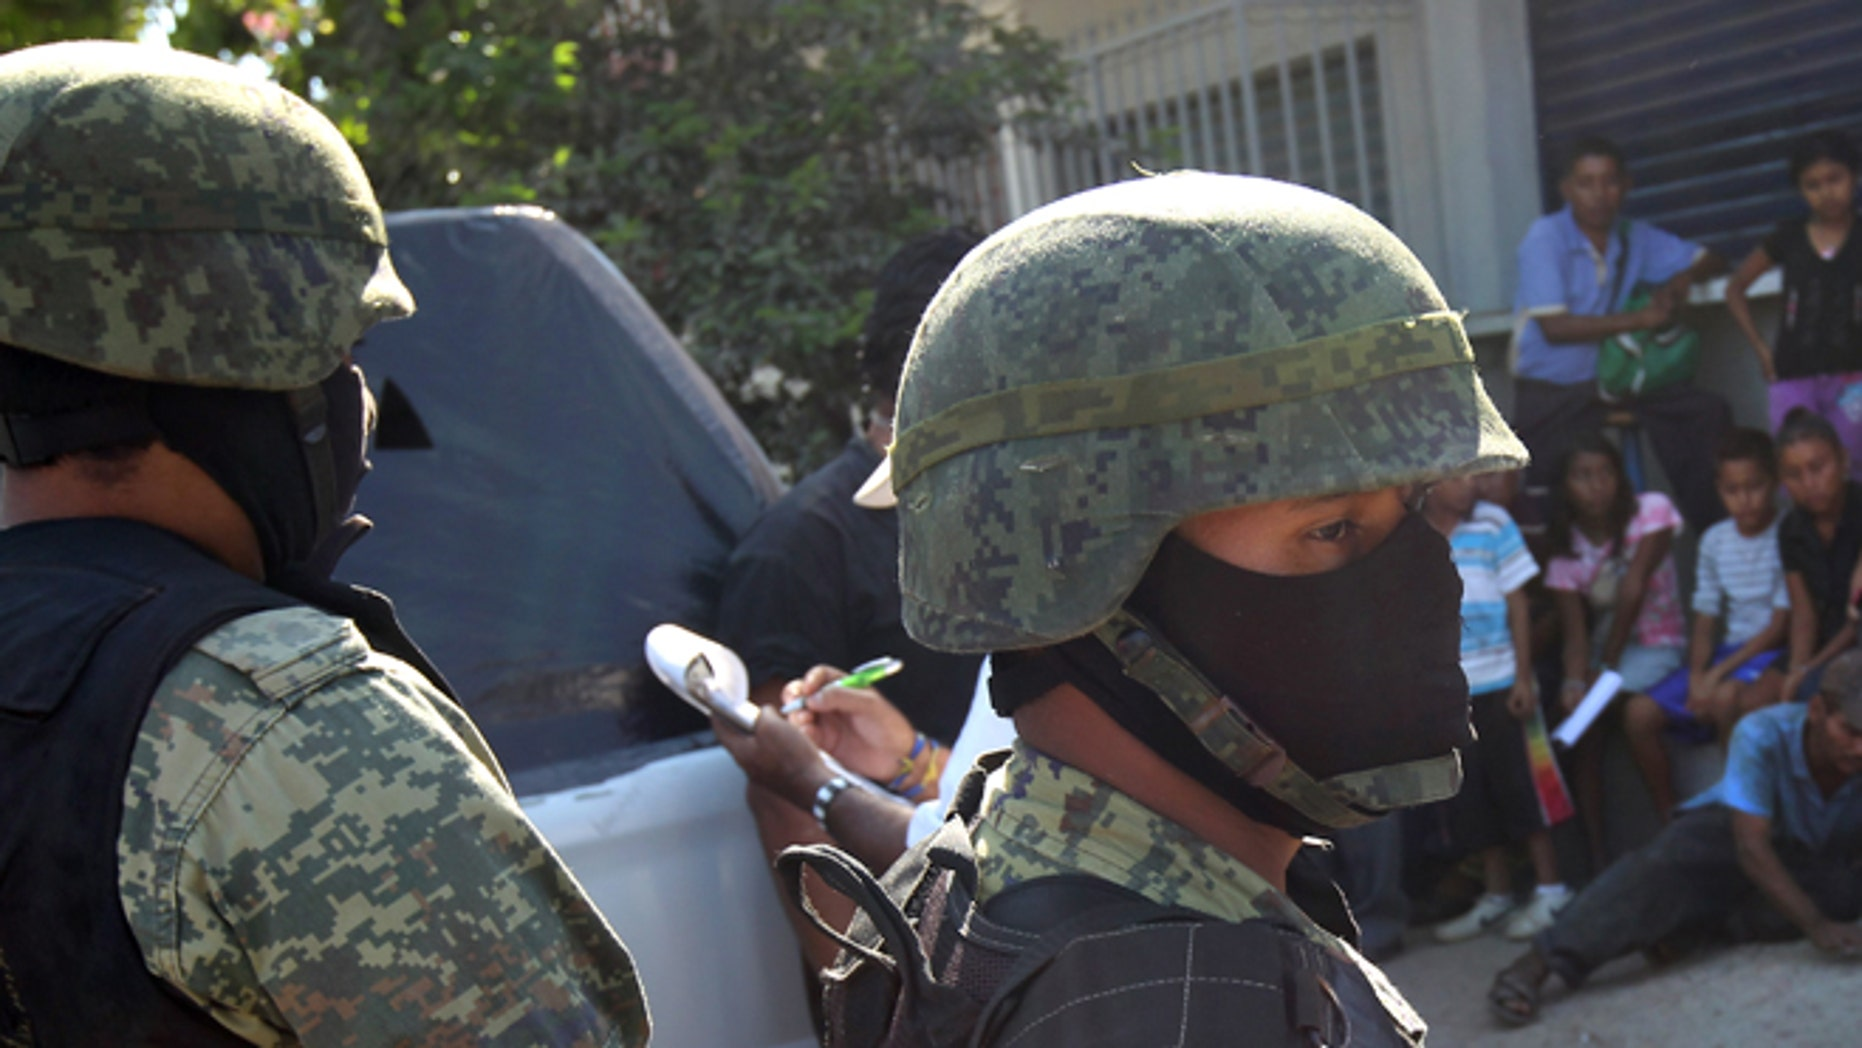 ACAPULCO, MEXICO - MARCH 03:  Mexican marines stand guard at the site of a suspected drug-related execution on March 3, 2012 near Acapulco, Mexico. Drug violence has surged in the coastal resort in the last year, making Acapulco the second most deadly city in Mexico after Juarez. One of Mexico's top tourist destinations, Acapulco has suffered a drop in business, especially from foreign tourists, due to the violence. Toursim accounts for about 70 percent of the economy of Acapulco's state of Guerrero and 9 percent of Mexico's economy.  (Photo by John Moore/Getty Images)